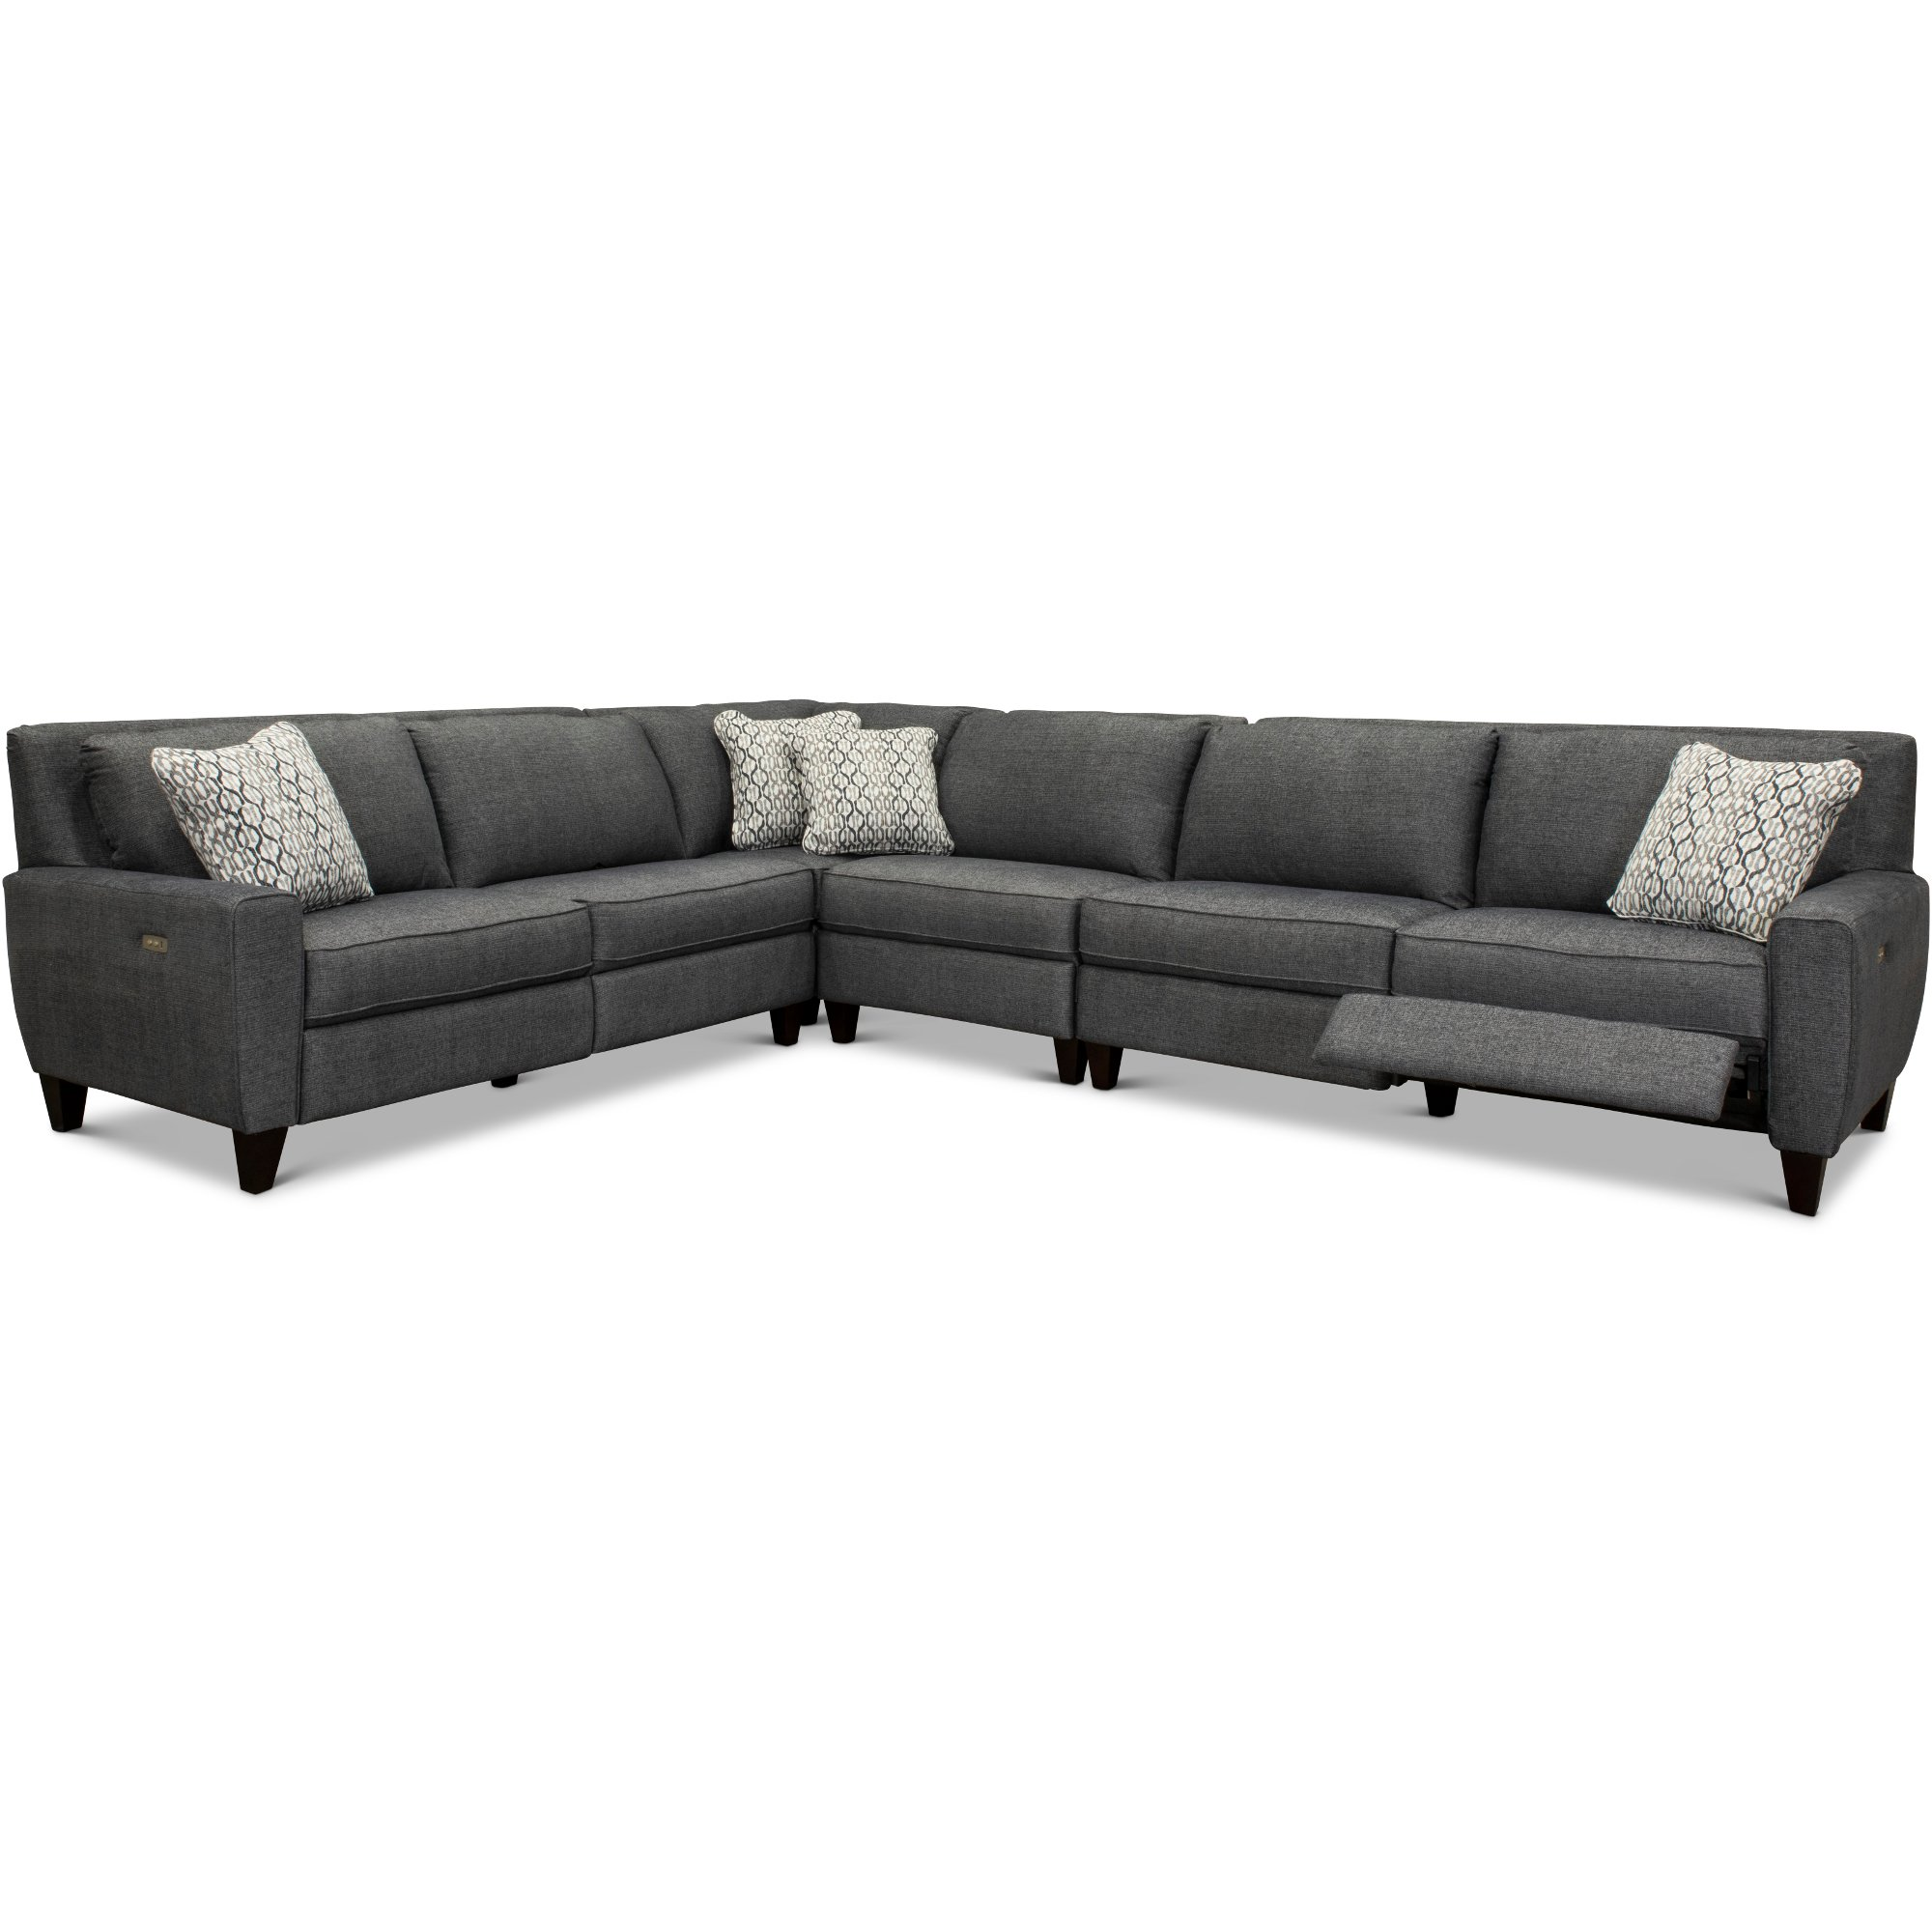 Buy living room furniture, couches, sectionals & tables Searching La ...